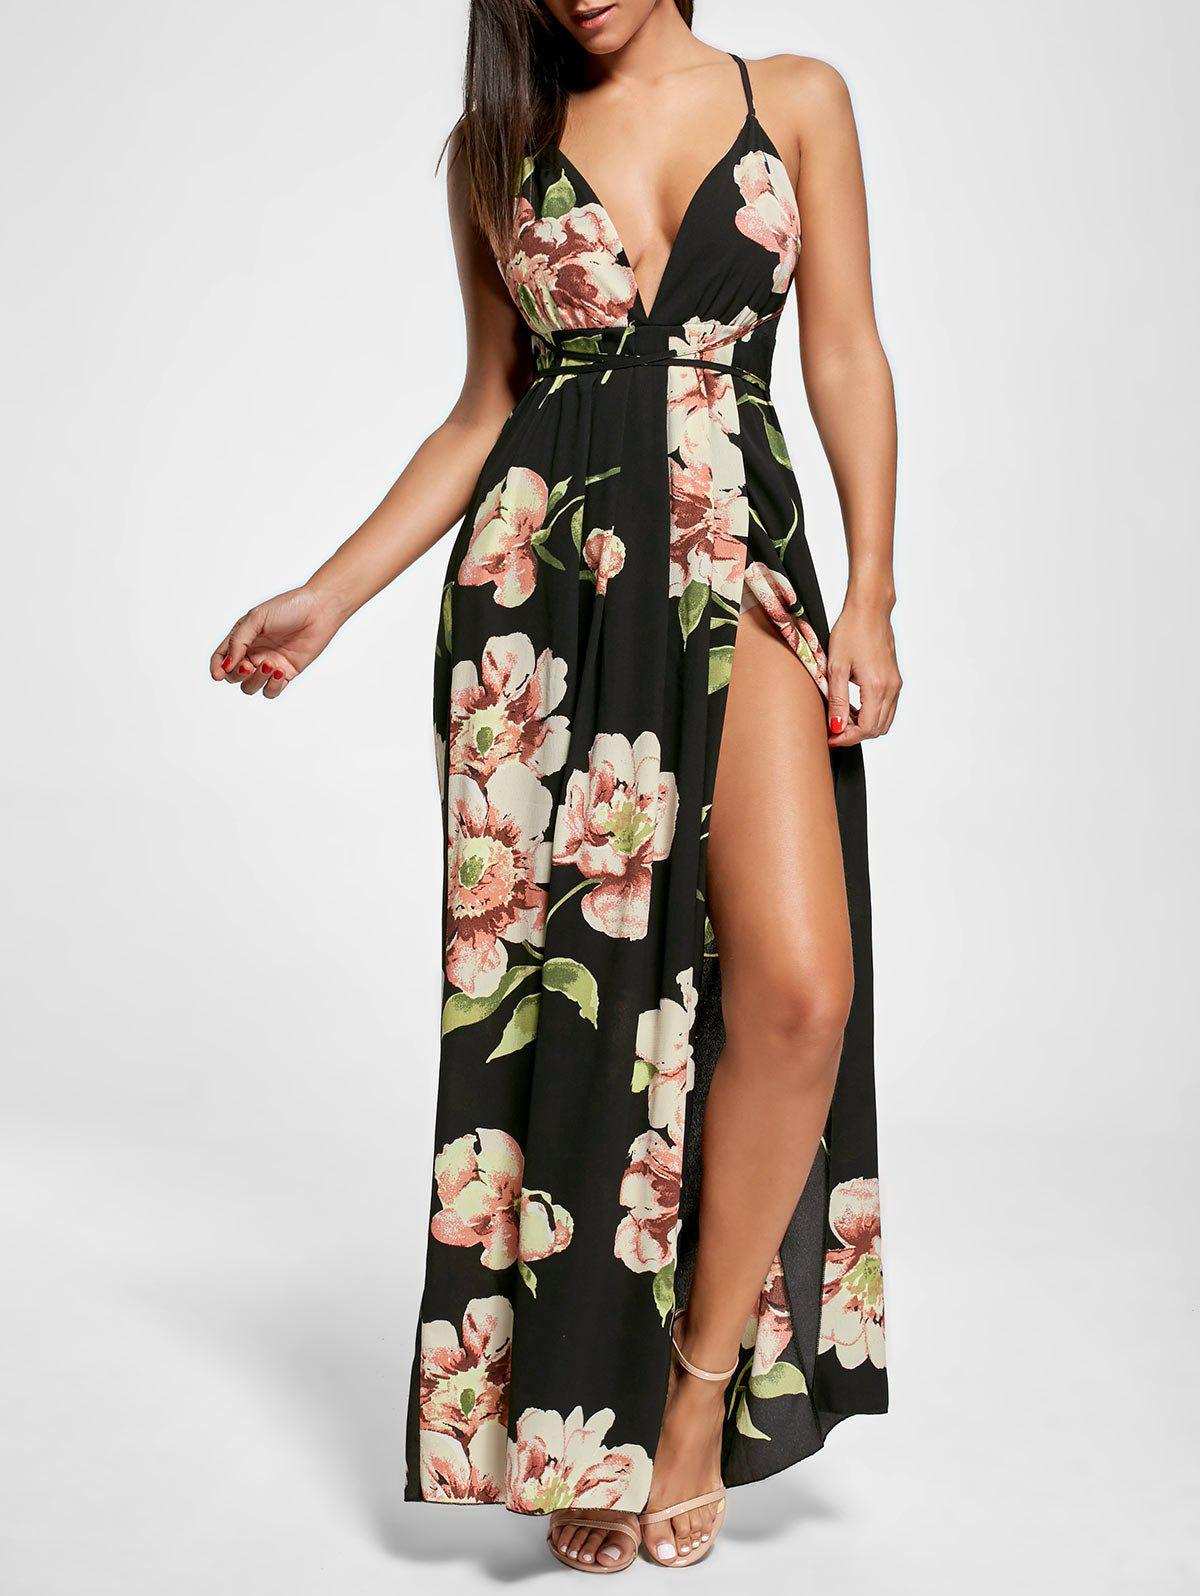 Floral Slit Backless Maxi Slip Plunge DressWOMEN<br><br>Size: M; Color: BLACK; Style: Sexy &amp; Club; Material: Polyester; Silhouette: Straight; Dresses Length: Floor-Length; Neckline: Spaghetti Strap; Sleeve Length: Sleeveless; Embellishment: Backless,Slit; Pattern Type: Floral; With Belt: No; Season: Summer; Weight: 0.3700kg; Package Contents: 1 x Dress;